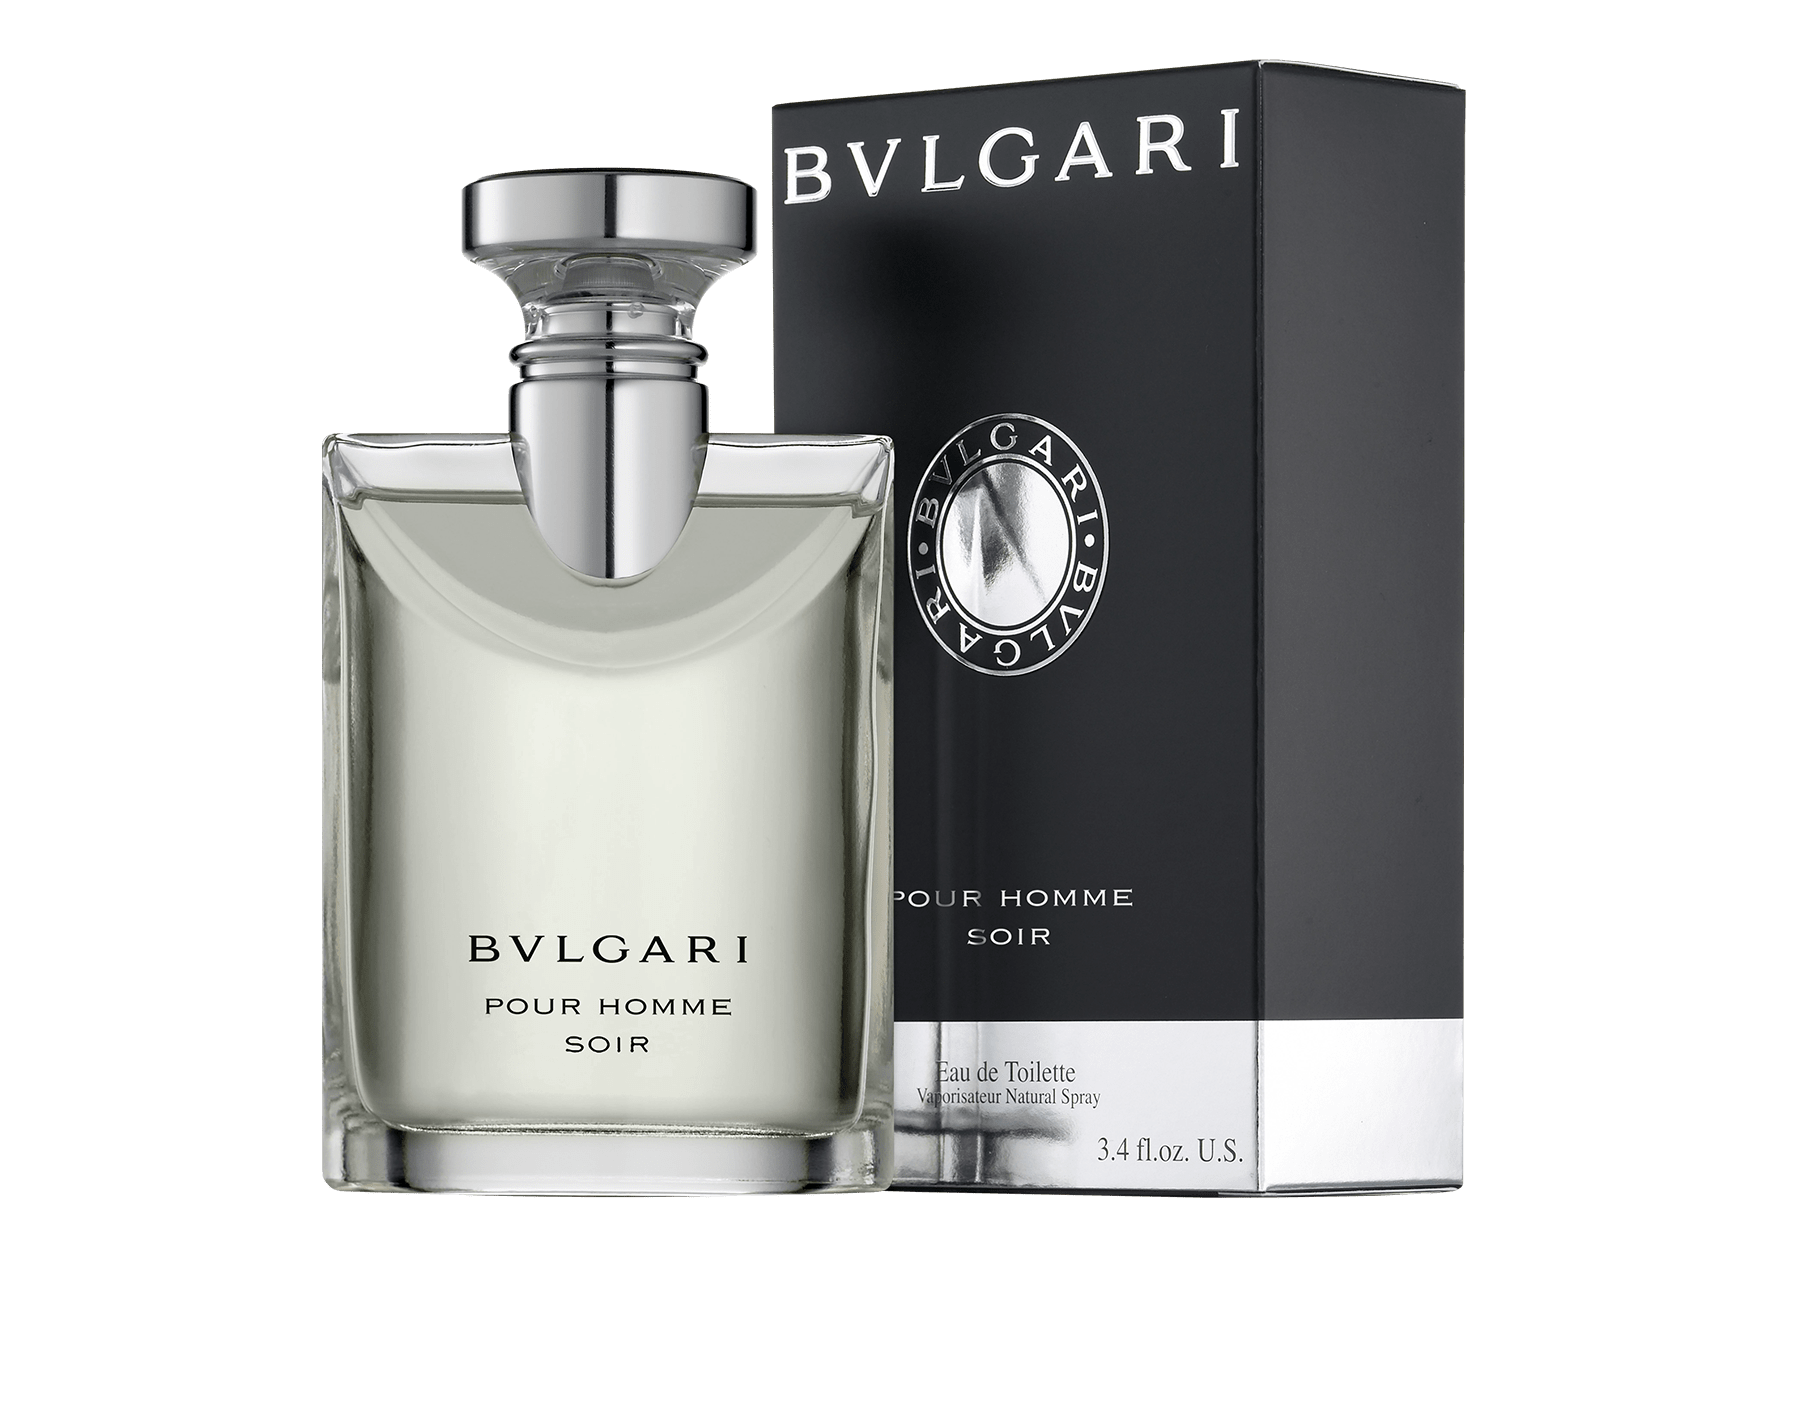 A contemporary and classic fragrance for men 83156 image 2